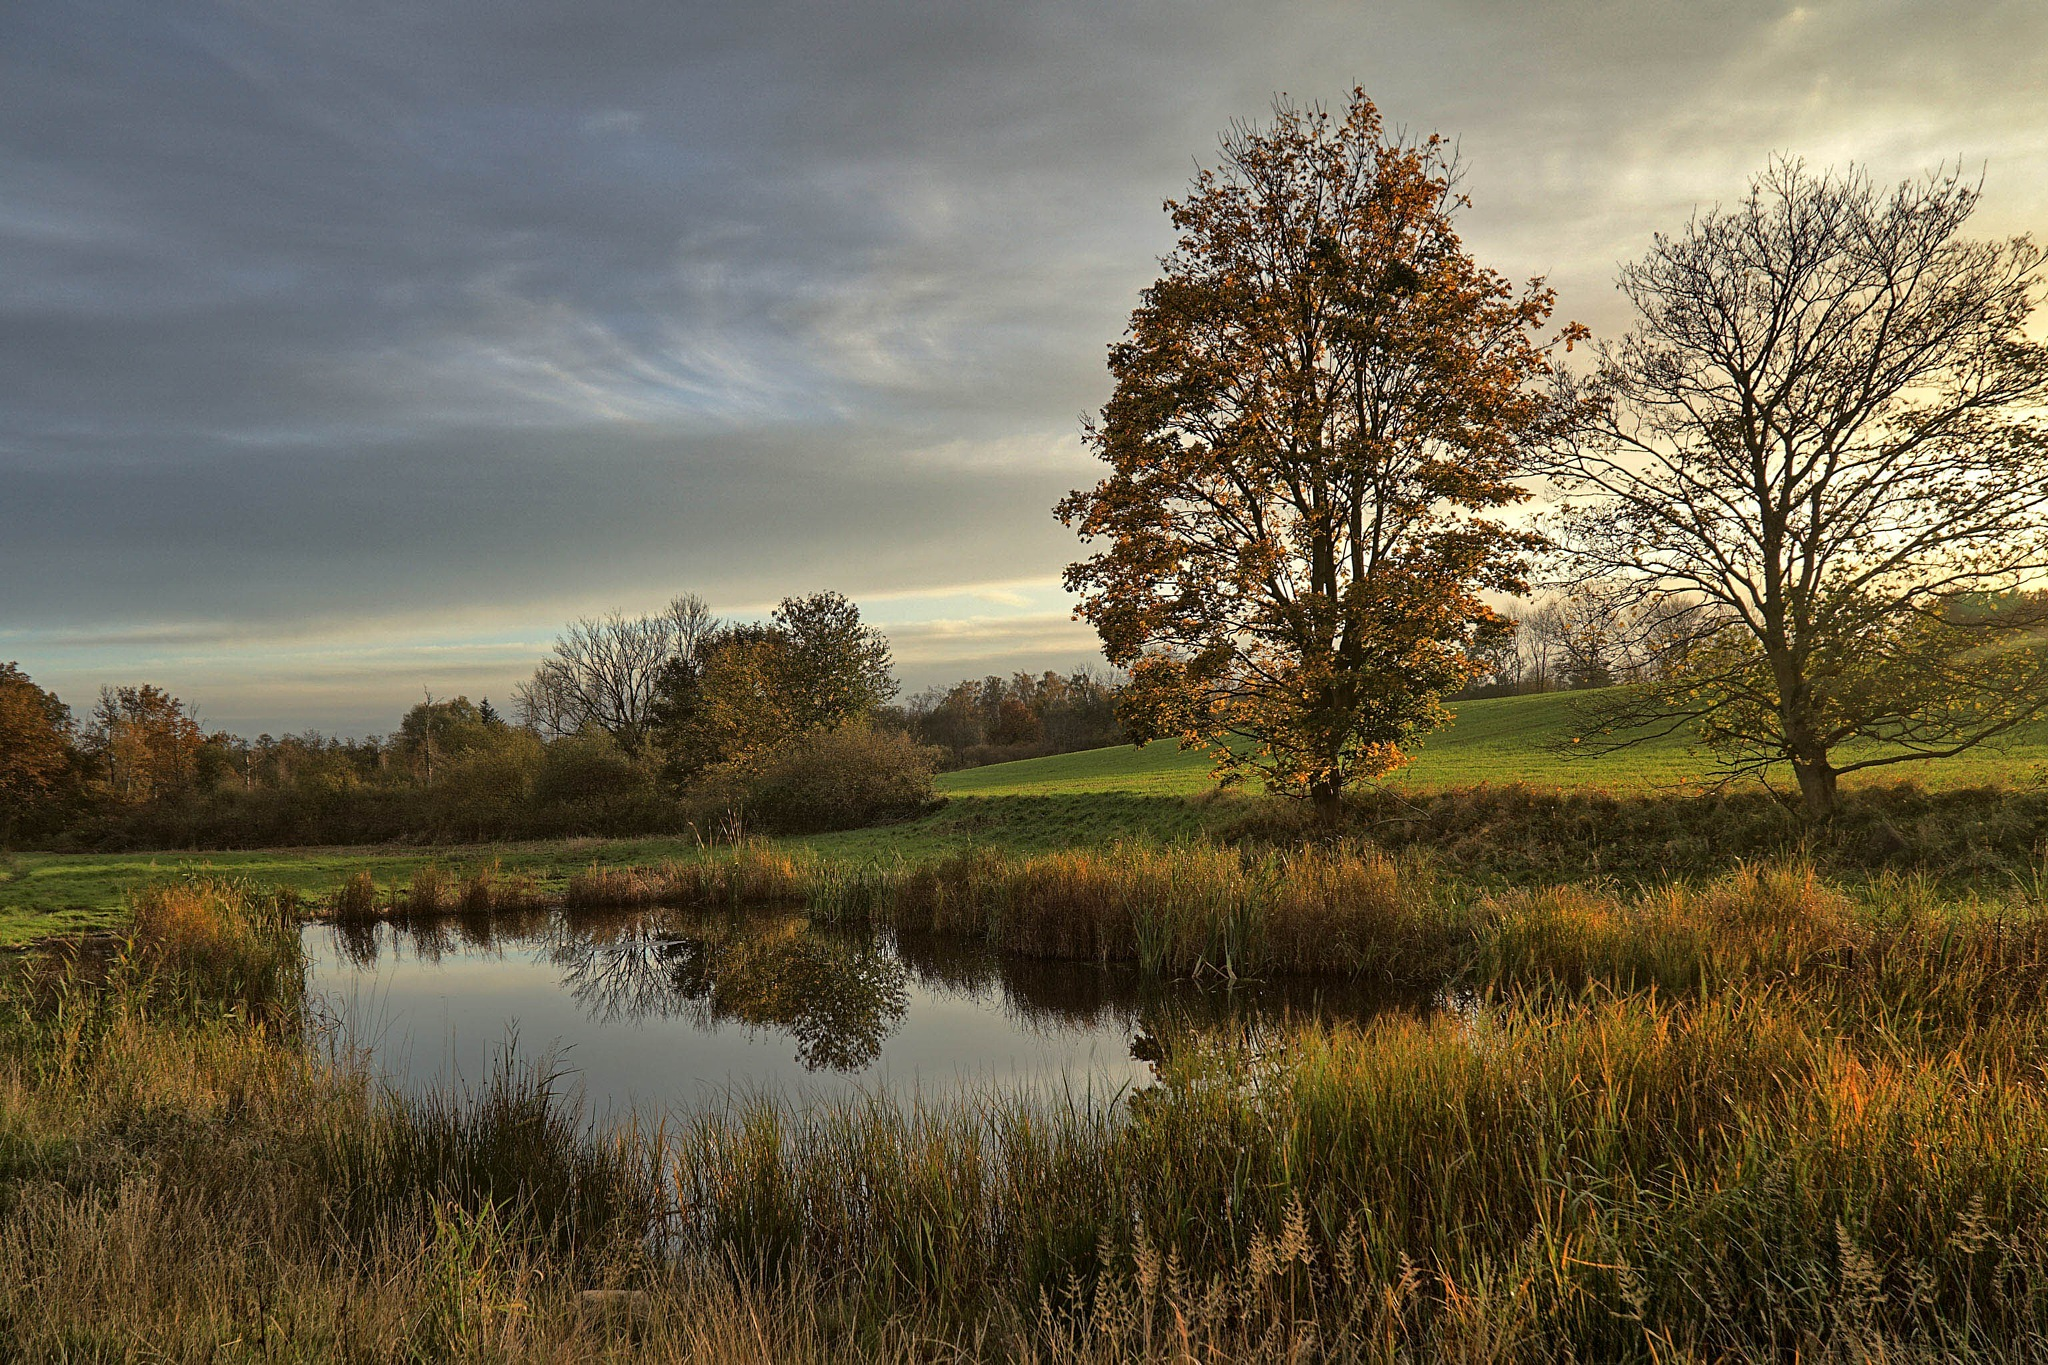 Lake in the fall afternoon sun by Dorte Hedengran